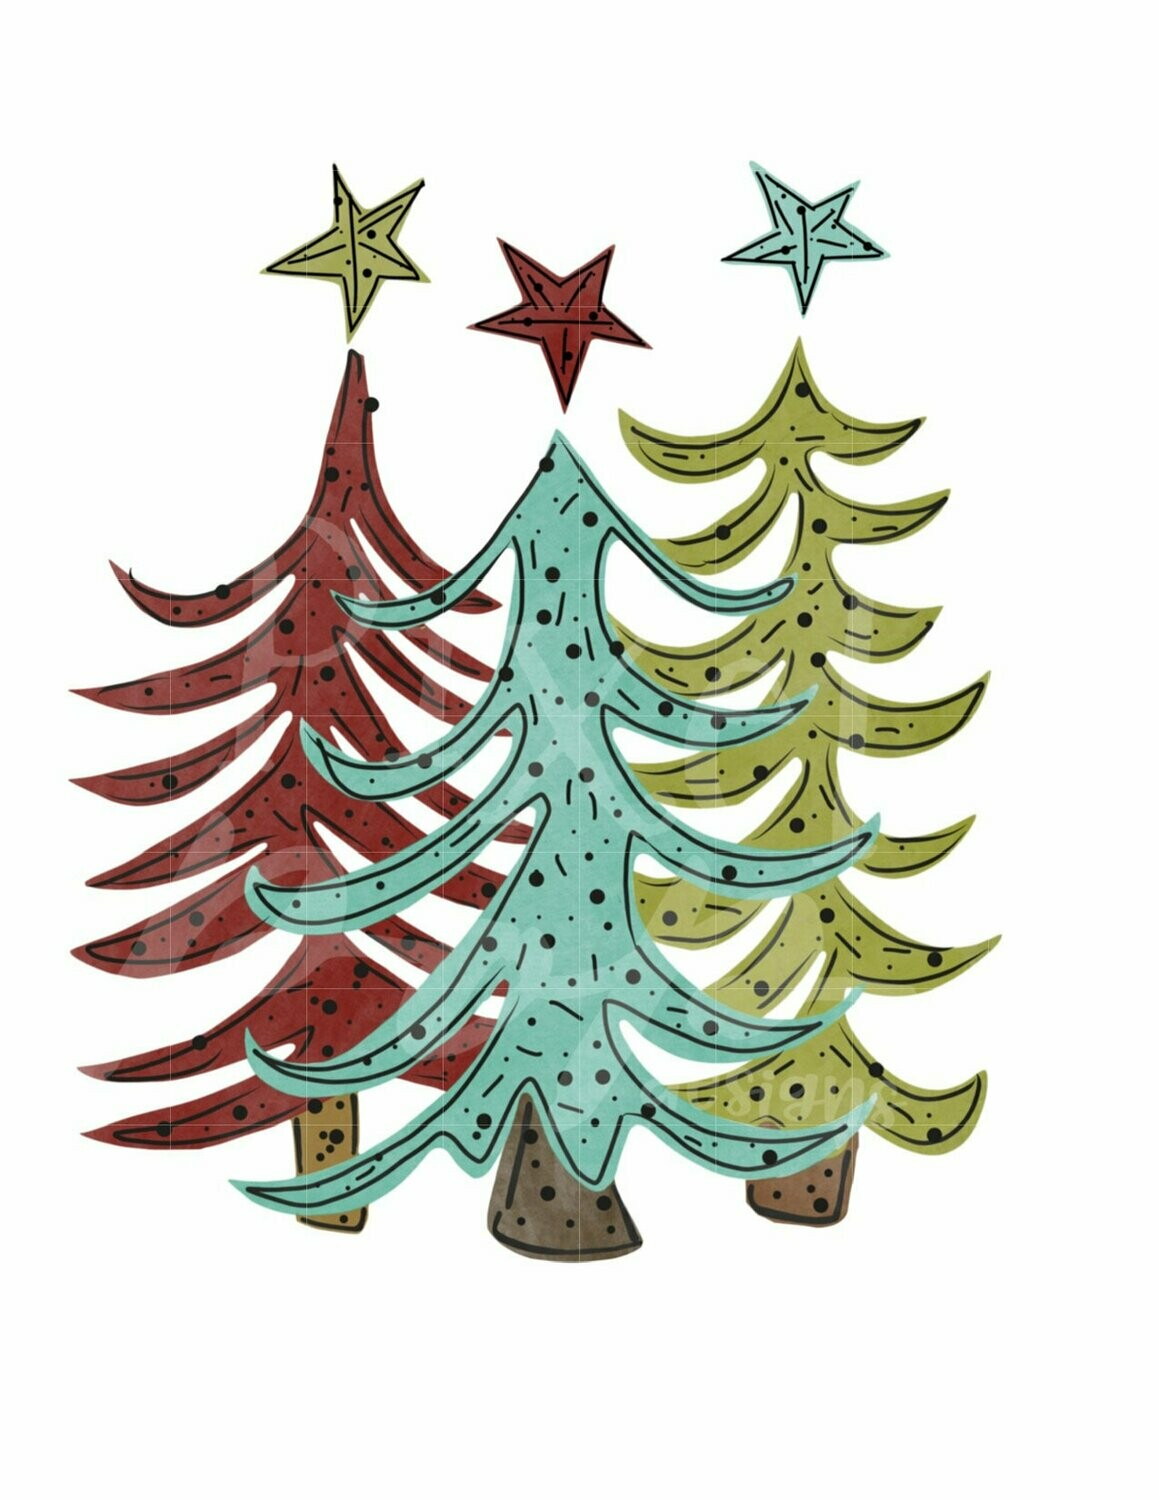 Funky Whimsical Christmas Trees Trio Watercolor Sublimation PNG   Hand Drawn Design   Sublimation PNG   Digital Download   Printable Artwork   Art